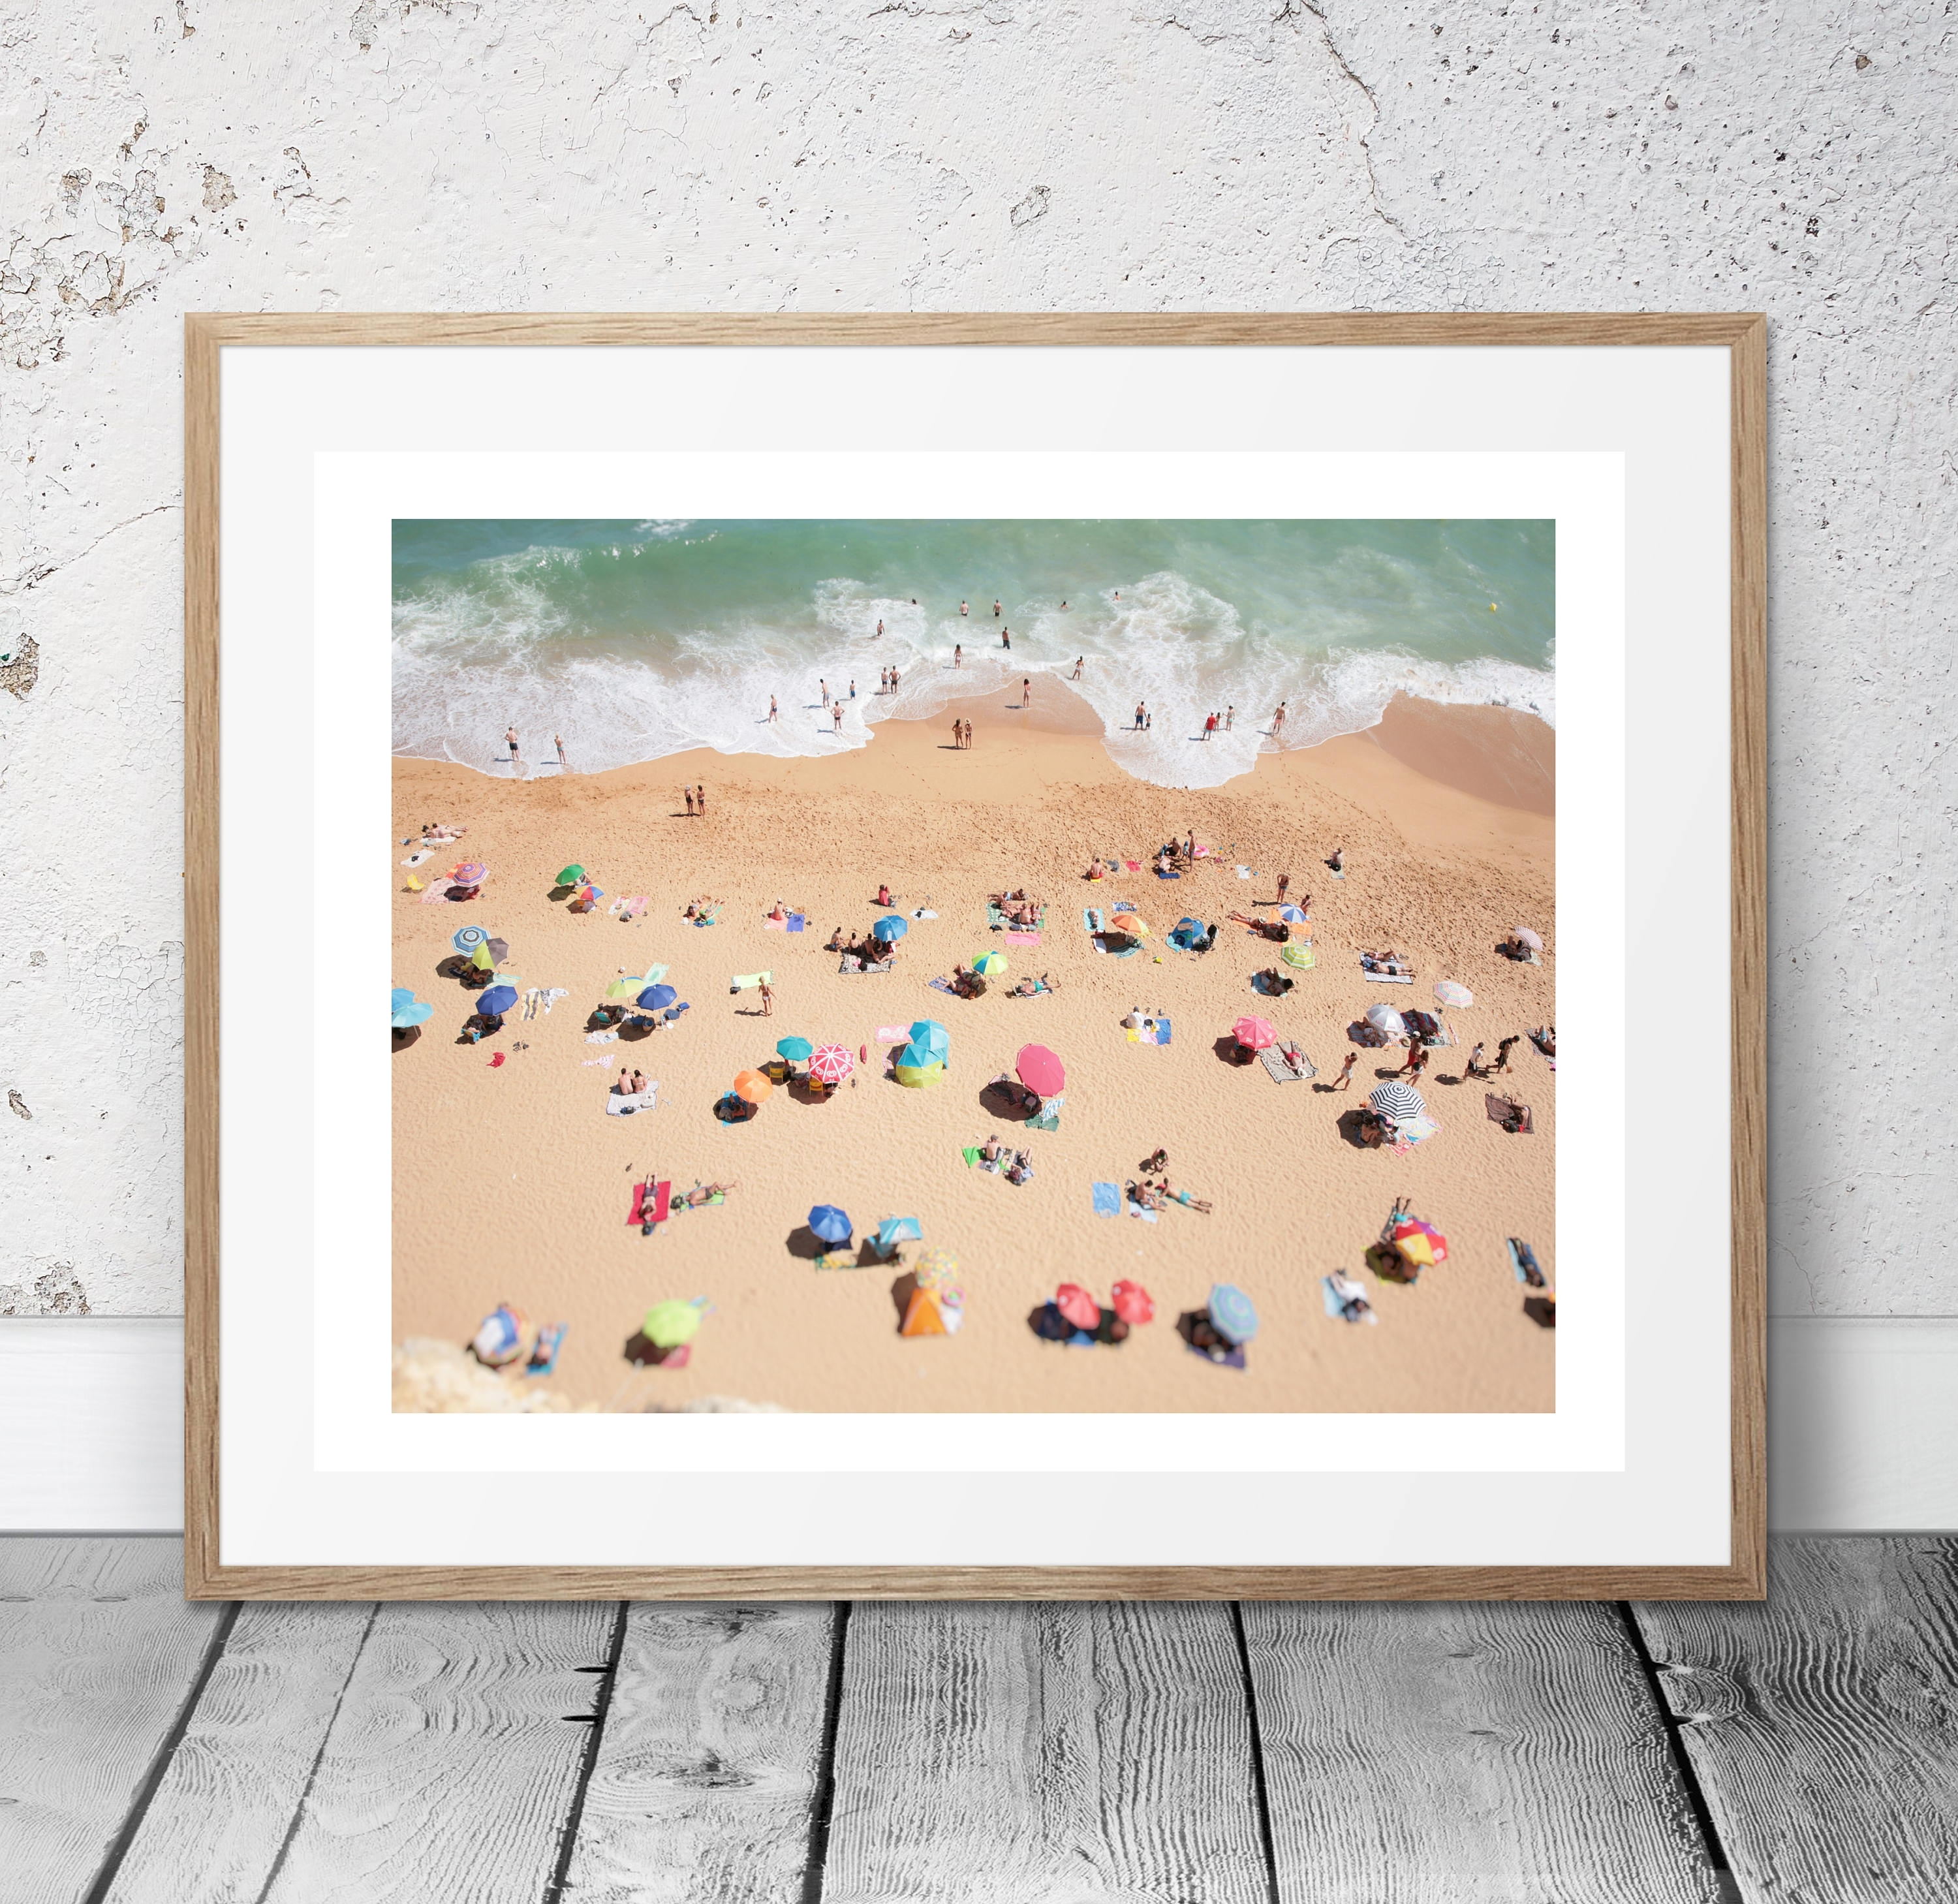 Aerial Beach Photo, People On The Beach, Modern Wall Art, Beach For Latest Large Coastal Wall Art (View 8 of 20)